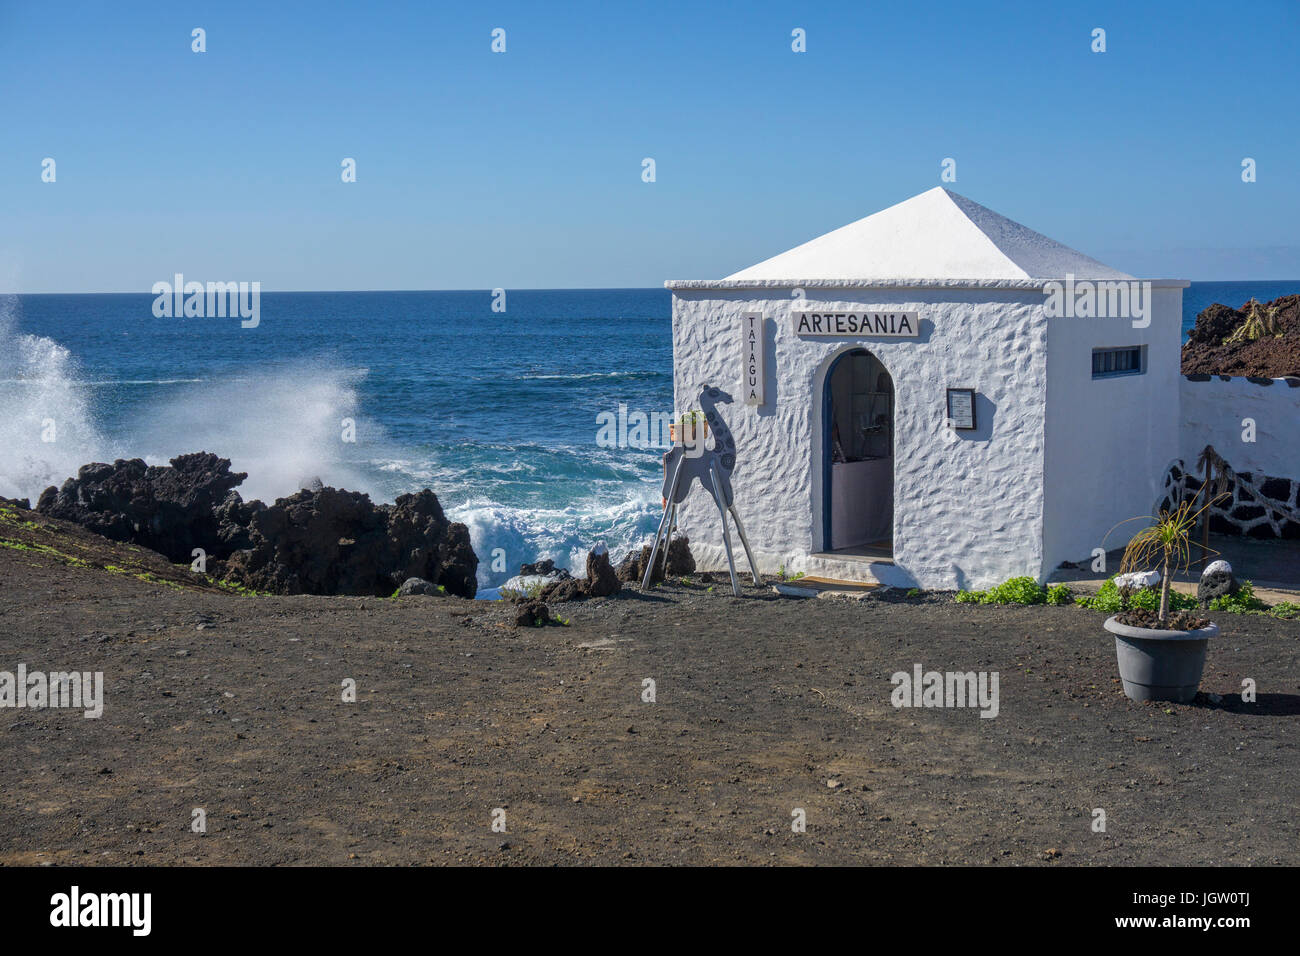 Artesania, tiny house with shop offers silver jewellry, beach of fishing village El Golfo, Lanzarote island, Canary - Stock Image